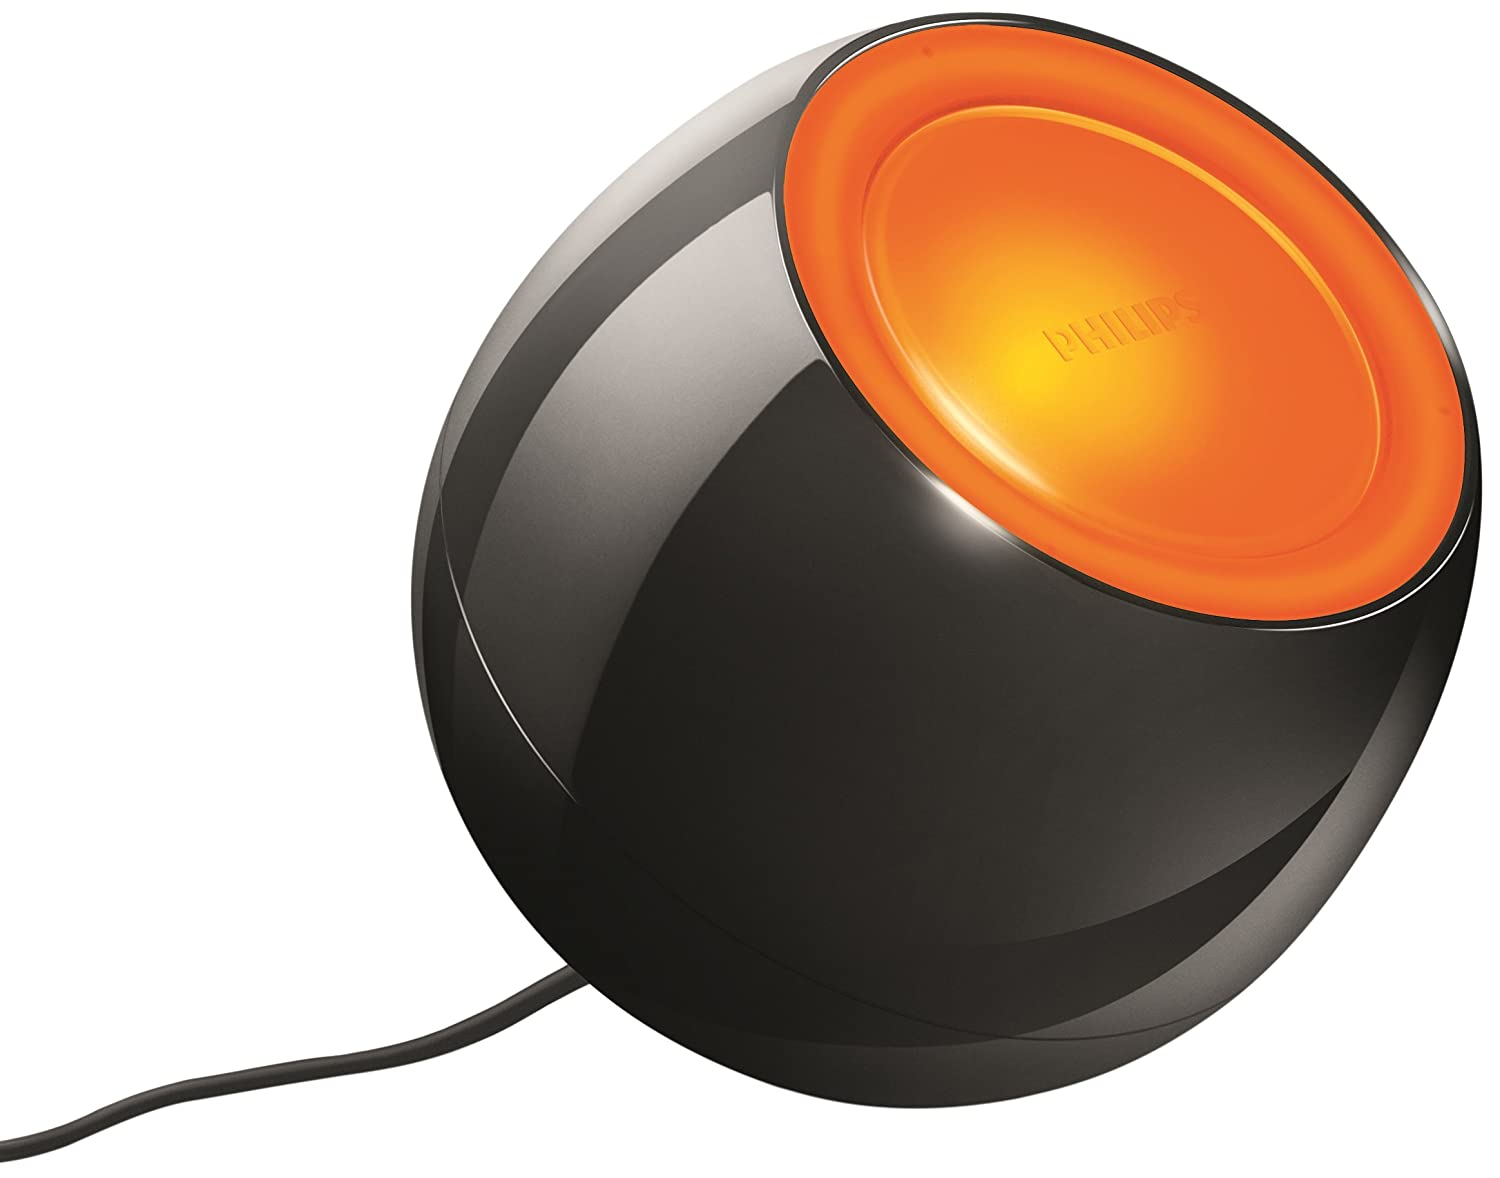 Philips livingcolors mini colour changing mood light black philips livingcolors mini colour changing mood light black integrated 1 x 5 watts led bulb amazon kitchen home parisarafo Image collections